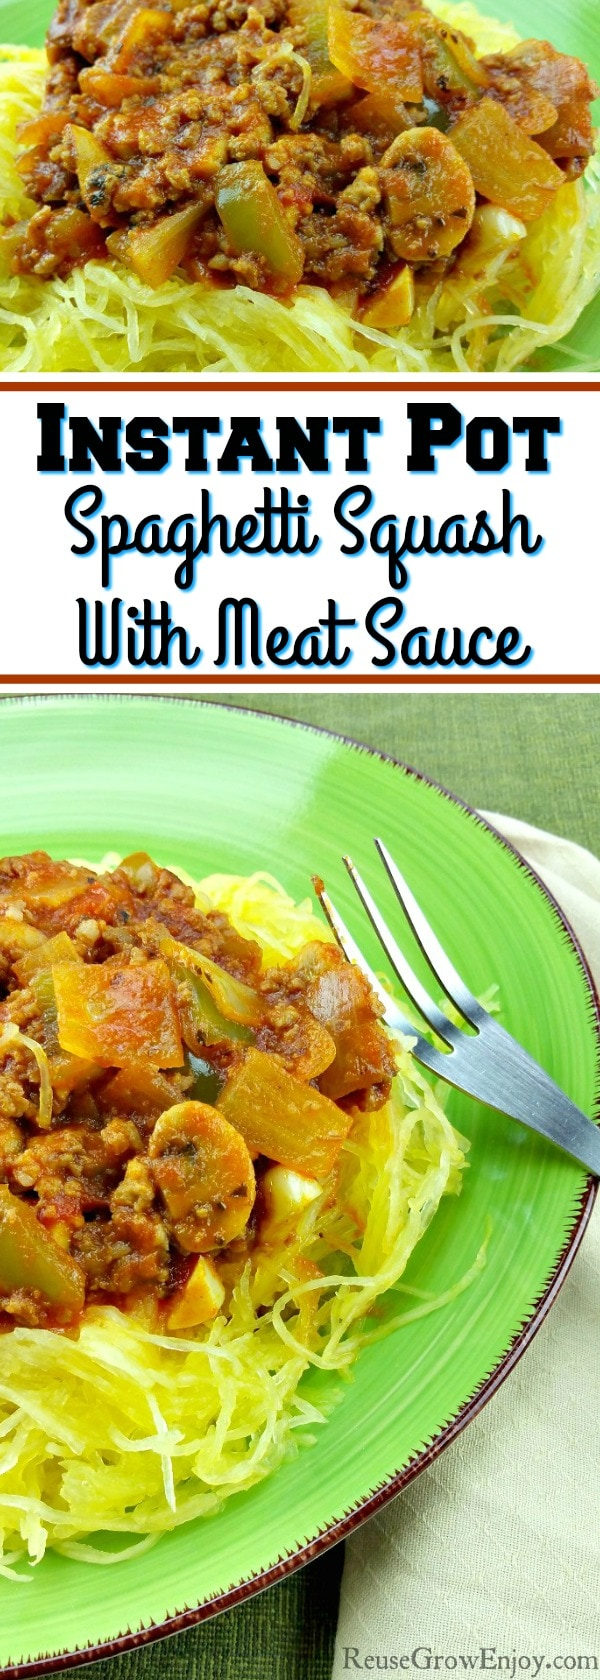 I have an awesome recipe for you to try! This recipe is made start to finish in the Instant Pot. It is a recipe for Instant Pot Spaghetti Squash With Meat Sauce.